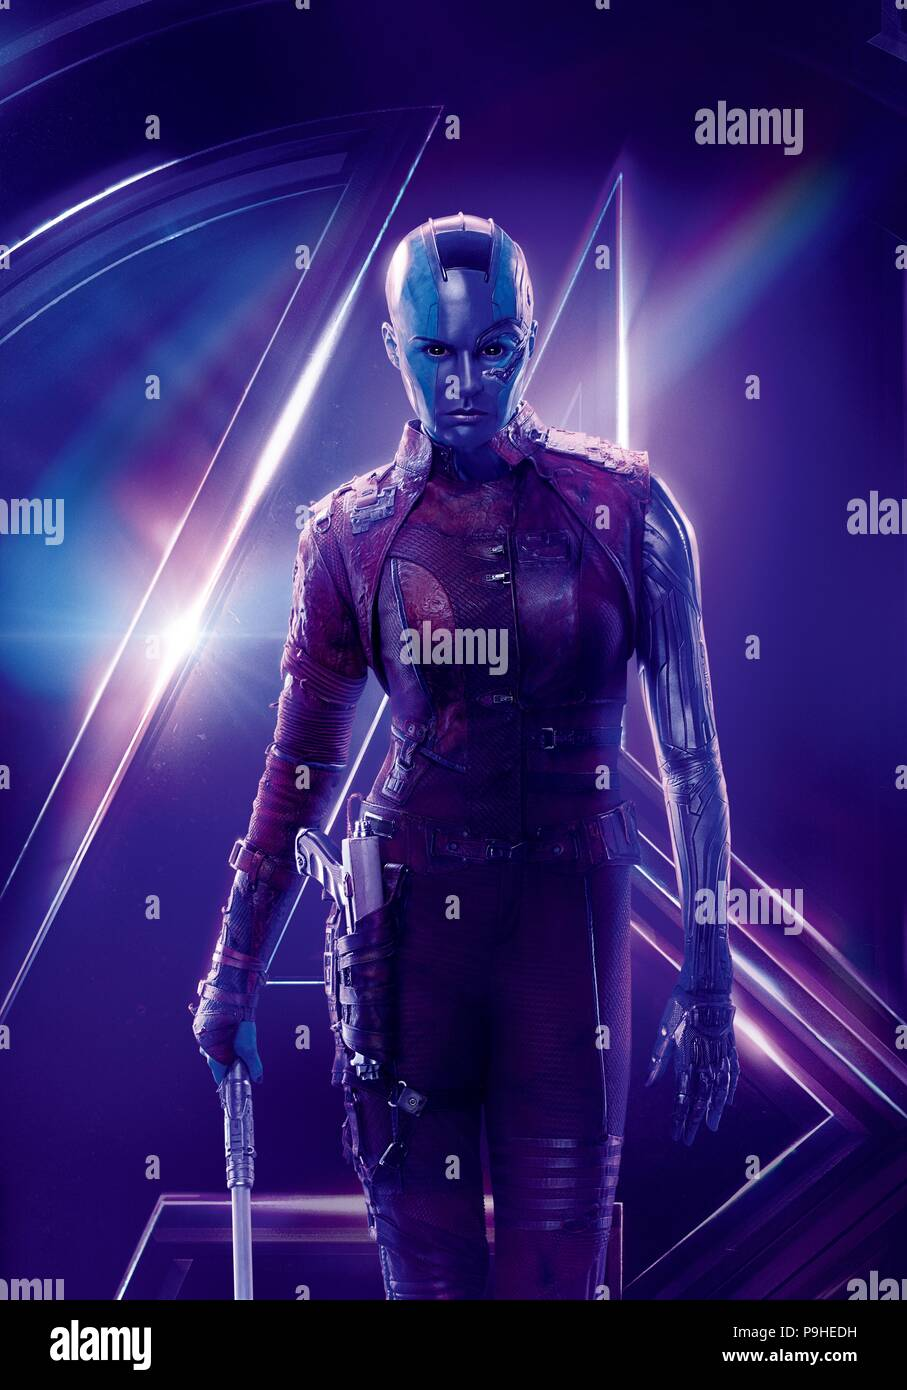 Marvel Avengers Poster Stock Photos Marvel Avengers Poster Stock